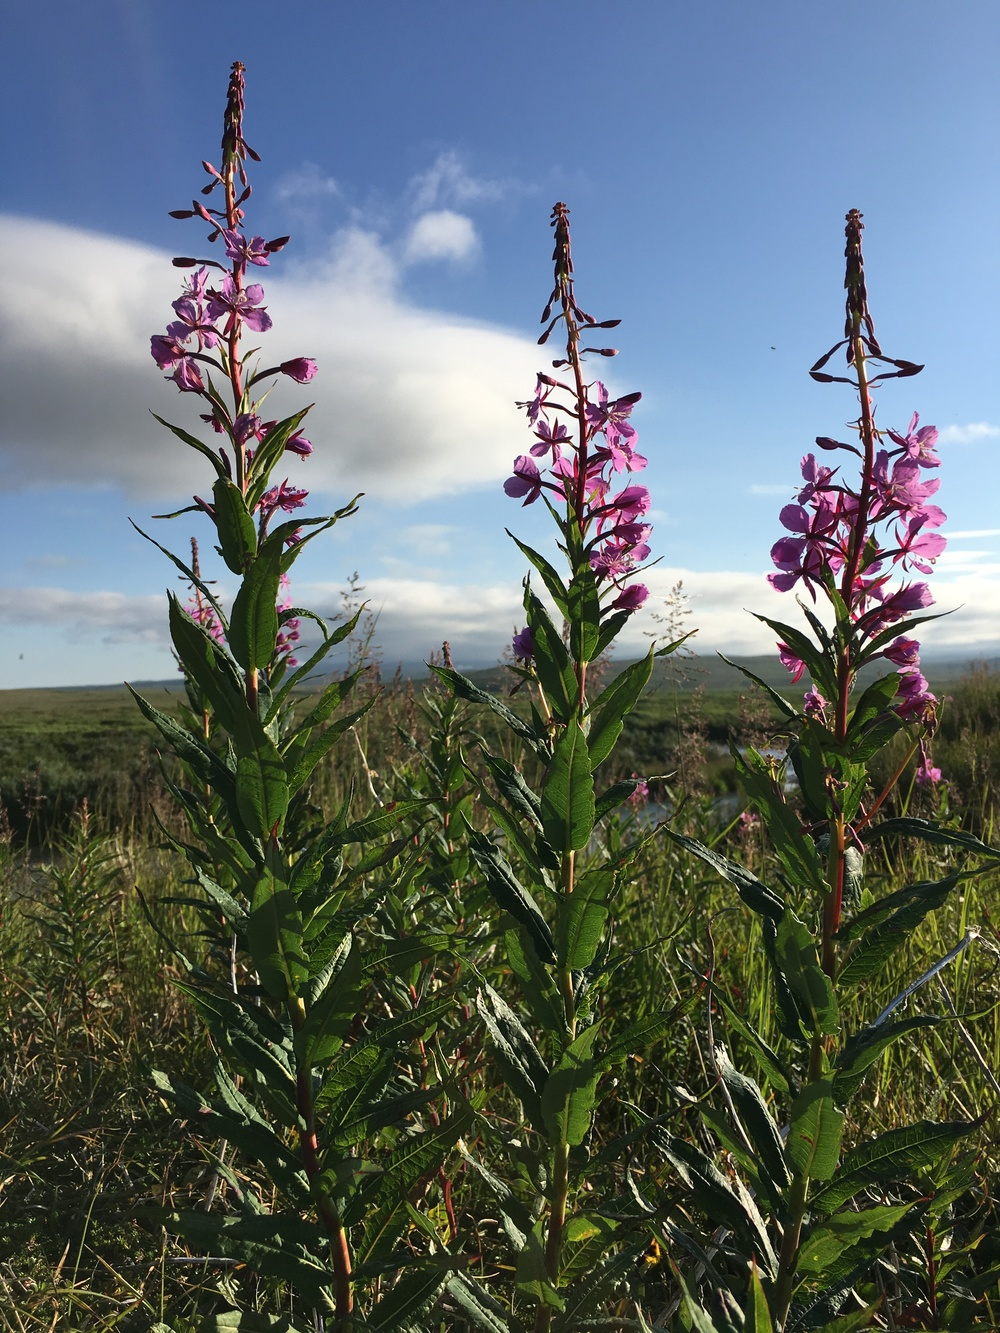 Fireweed - Alaska's hardy and widespread flower